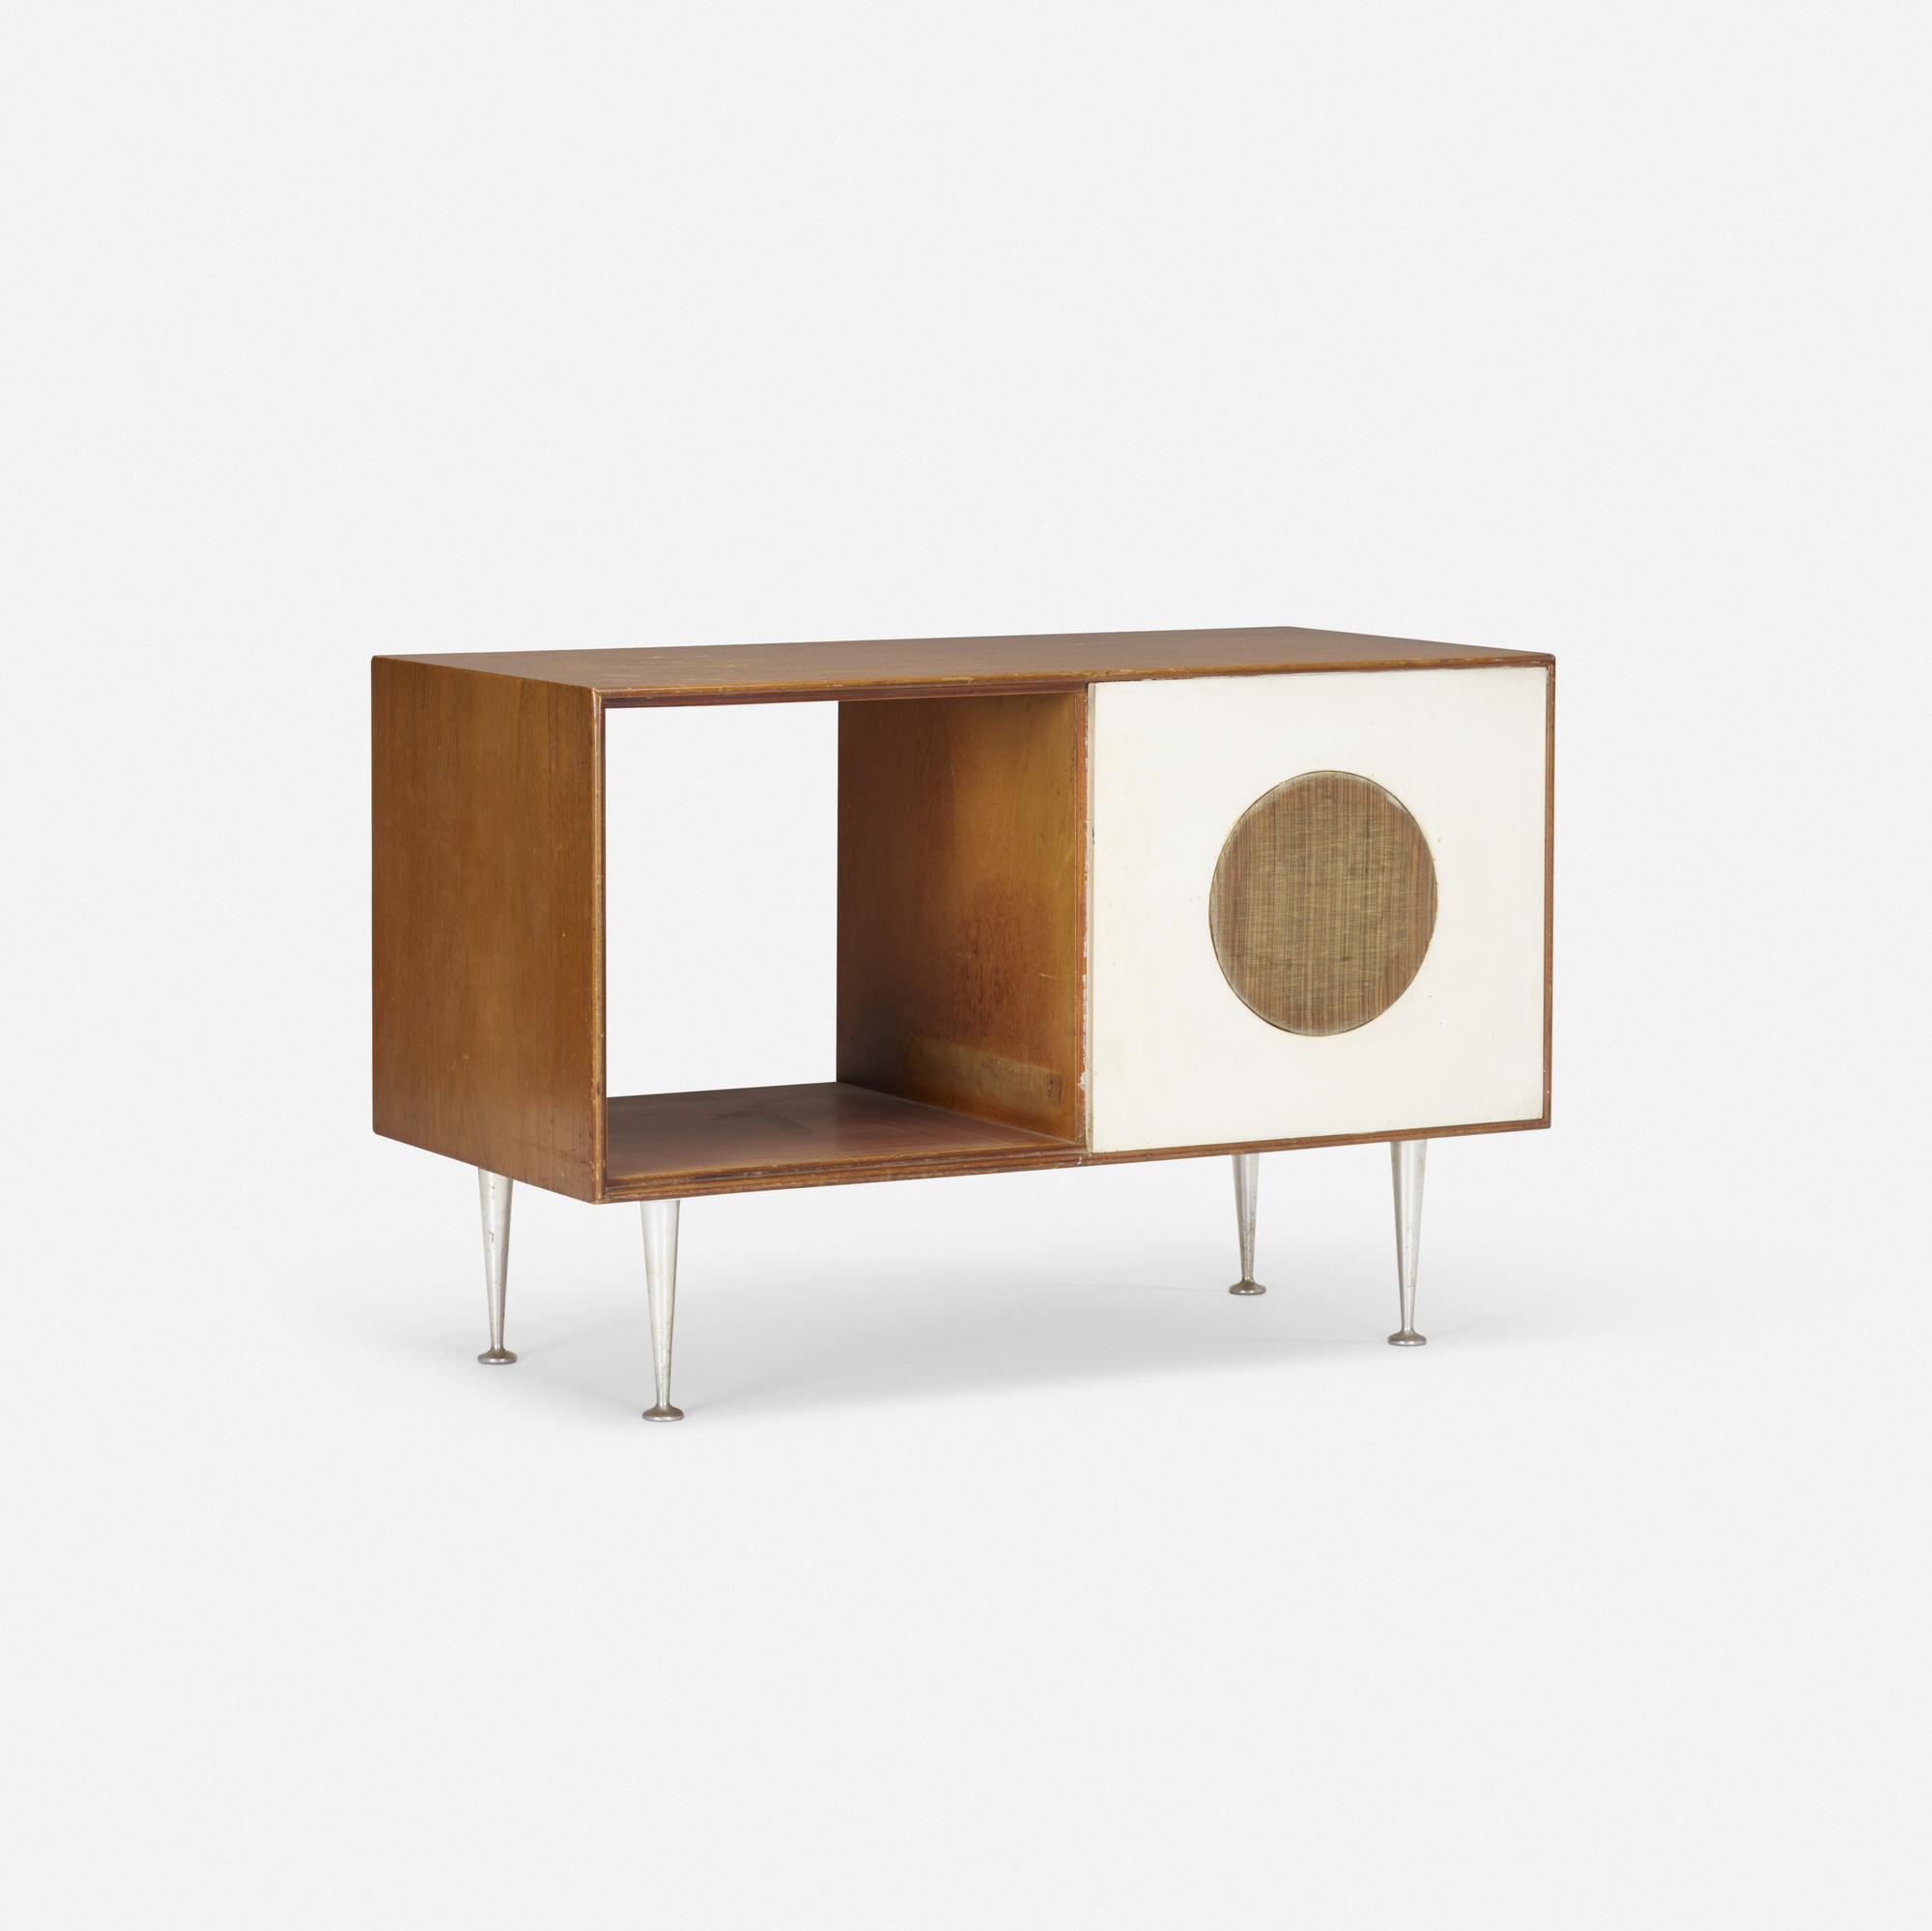 281: Charles And Ray Eames / Experimental Speaker Cabinet (1 Of 2)